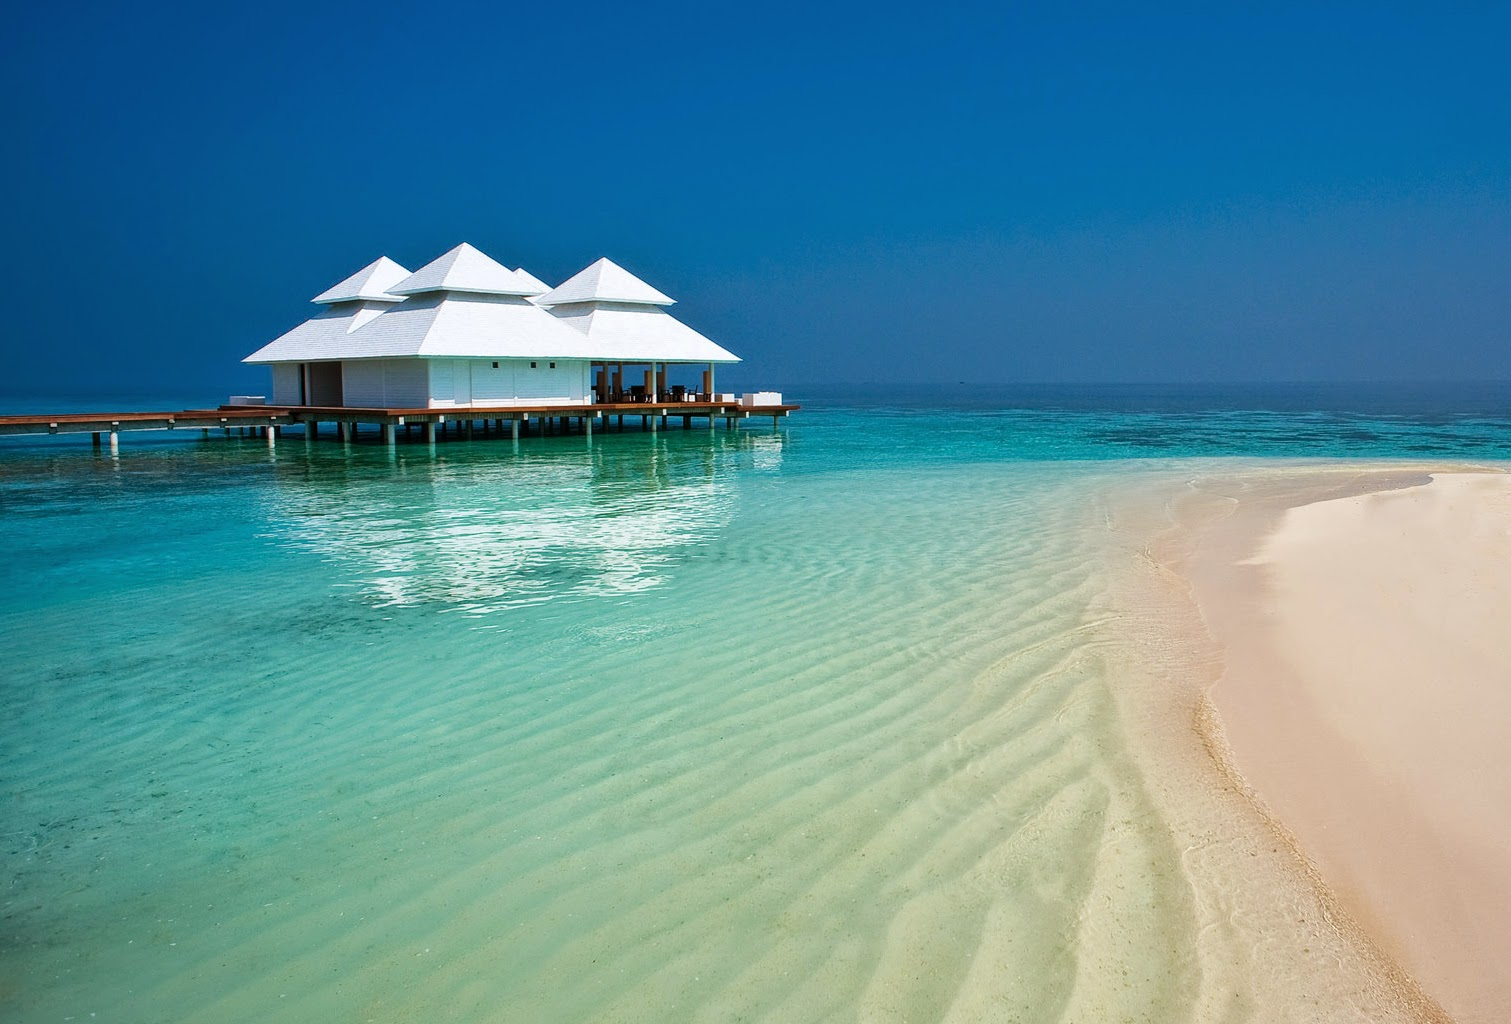 One of the beautiful beaches of the Maldives, with a stilt house.